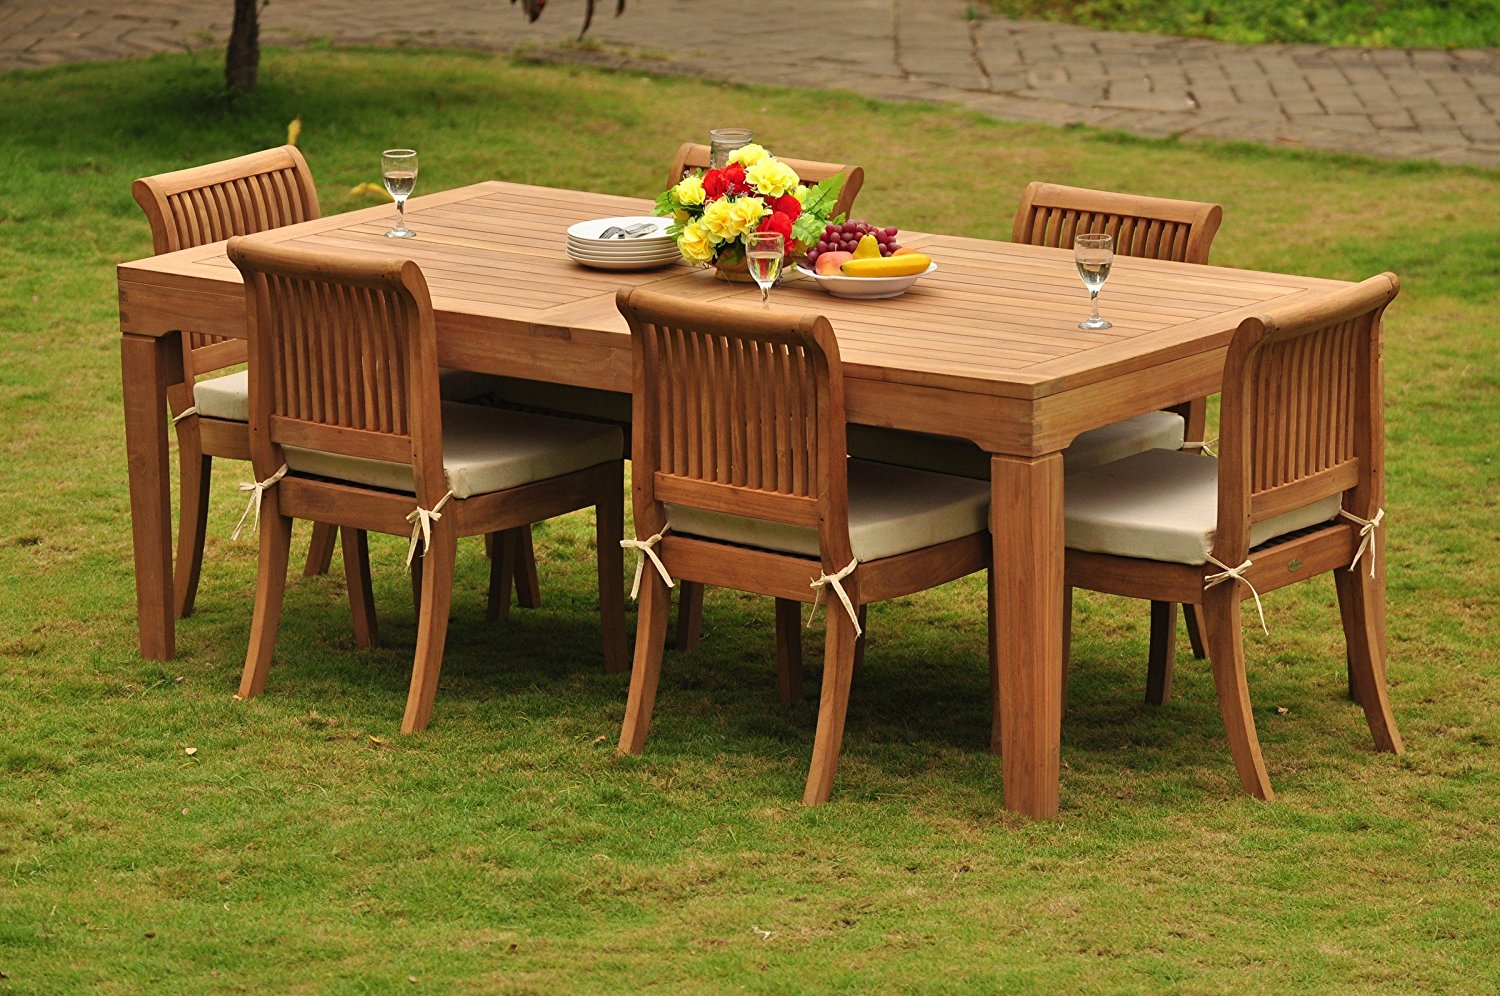 Buy Grade A Teak Wood Dining Set 6 Seater 7 Pc Large Caranasas 122 Dining Rectangle Table Table And 6 Giva Armless Chairs Wfdsgv58 In Cheap Price On Alibaba Com